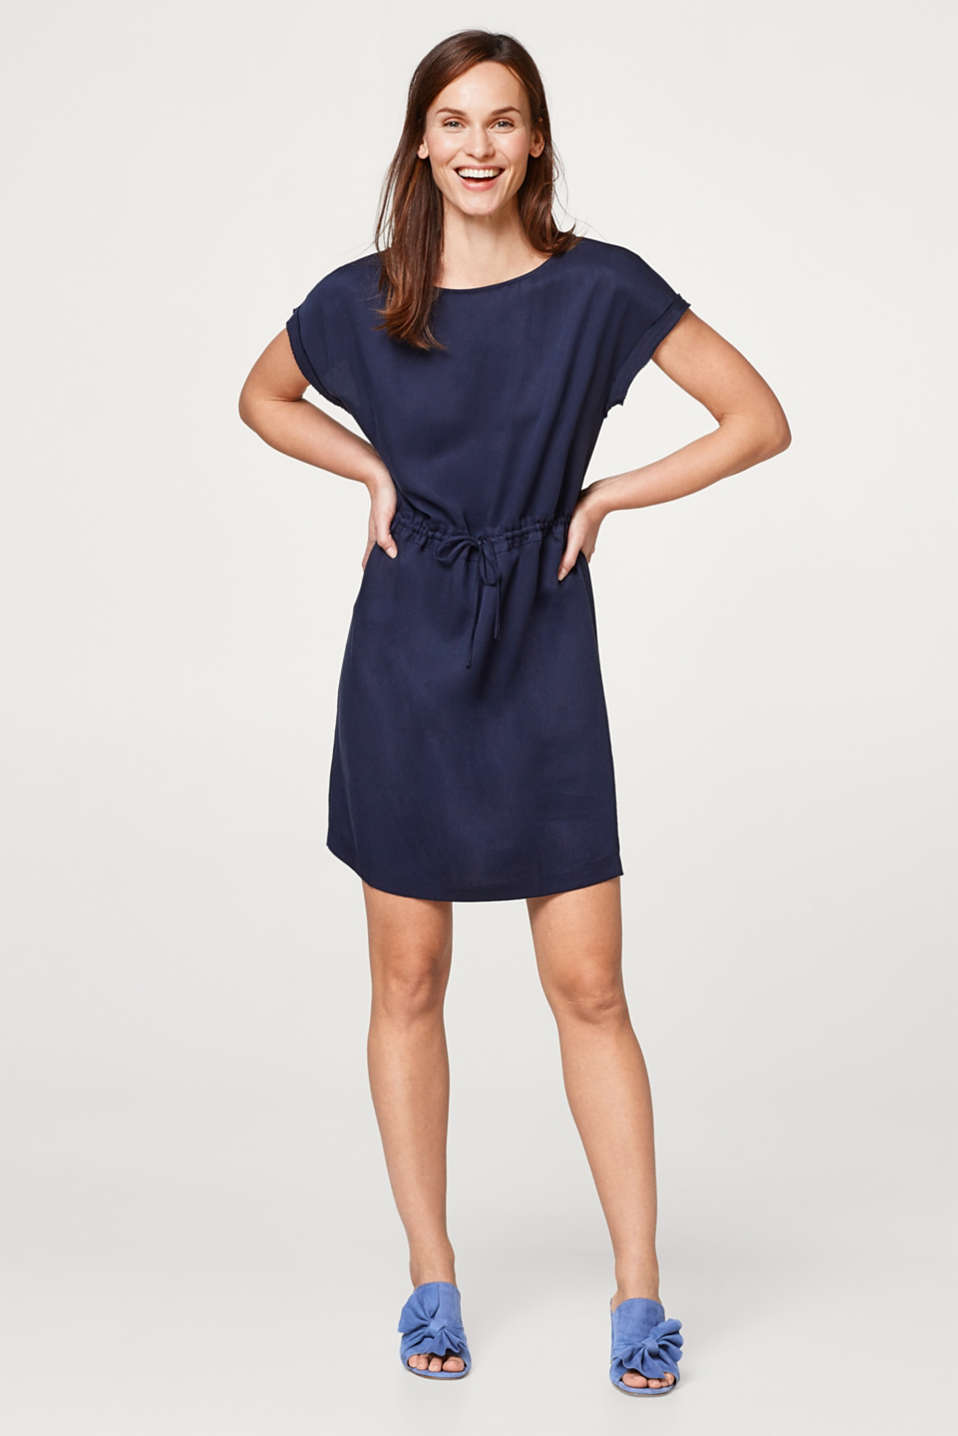 Lightweight lyocell dress with a drawstring waist